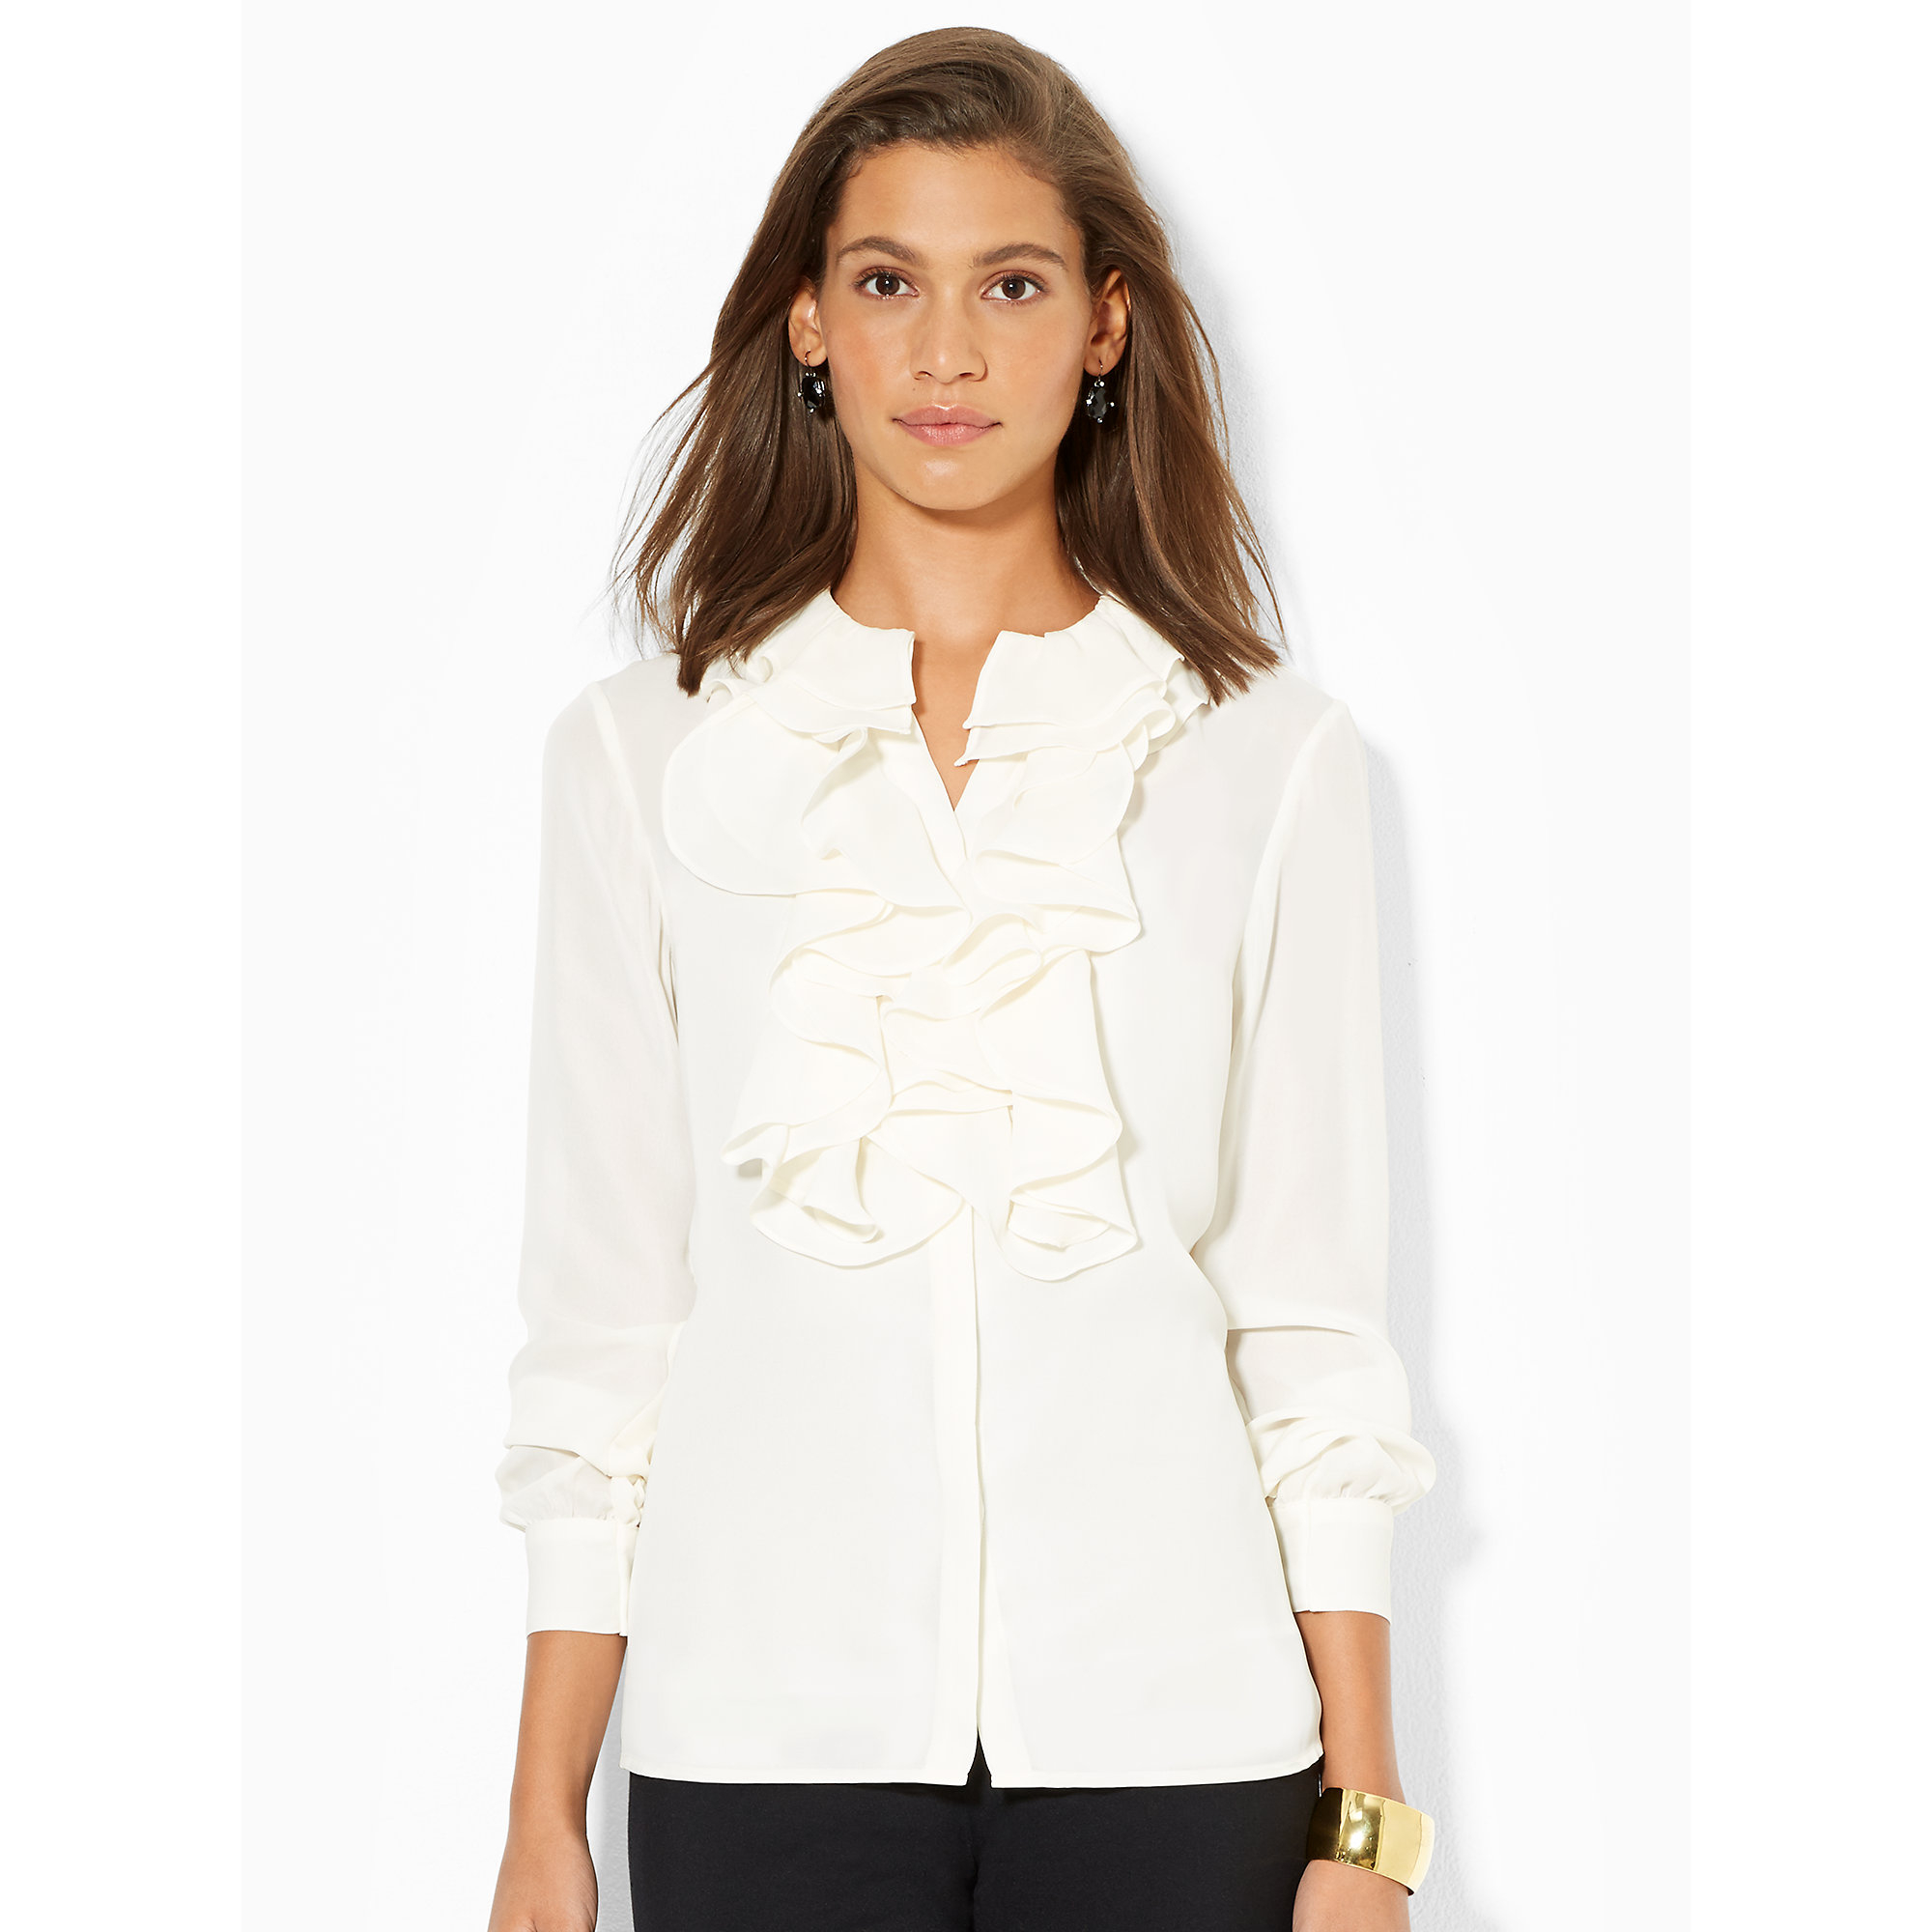 Artisan-made women's long sleeve shirts are handcrafted of natural fibers at Peruvian Connection. Our luxuriously soft pima cotton tunics, women's blouses and women's turtlenecks are a versatile match for one of our women's skirts, dress pants or jeans.